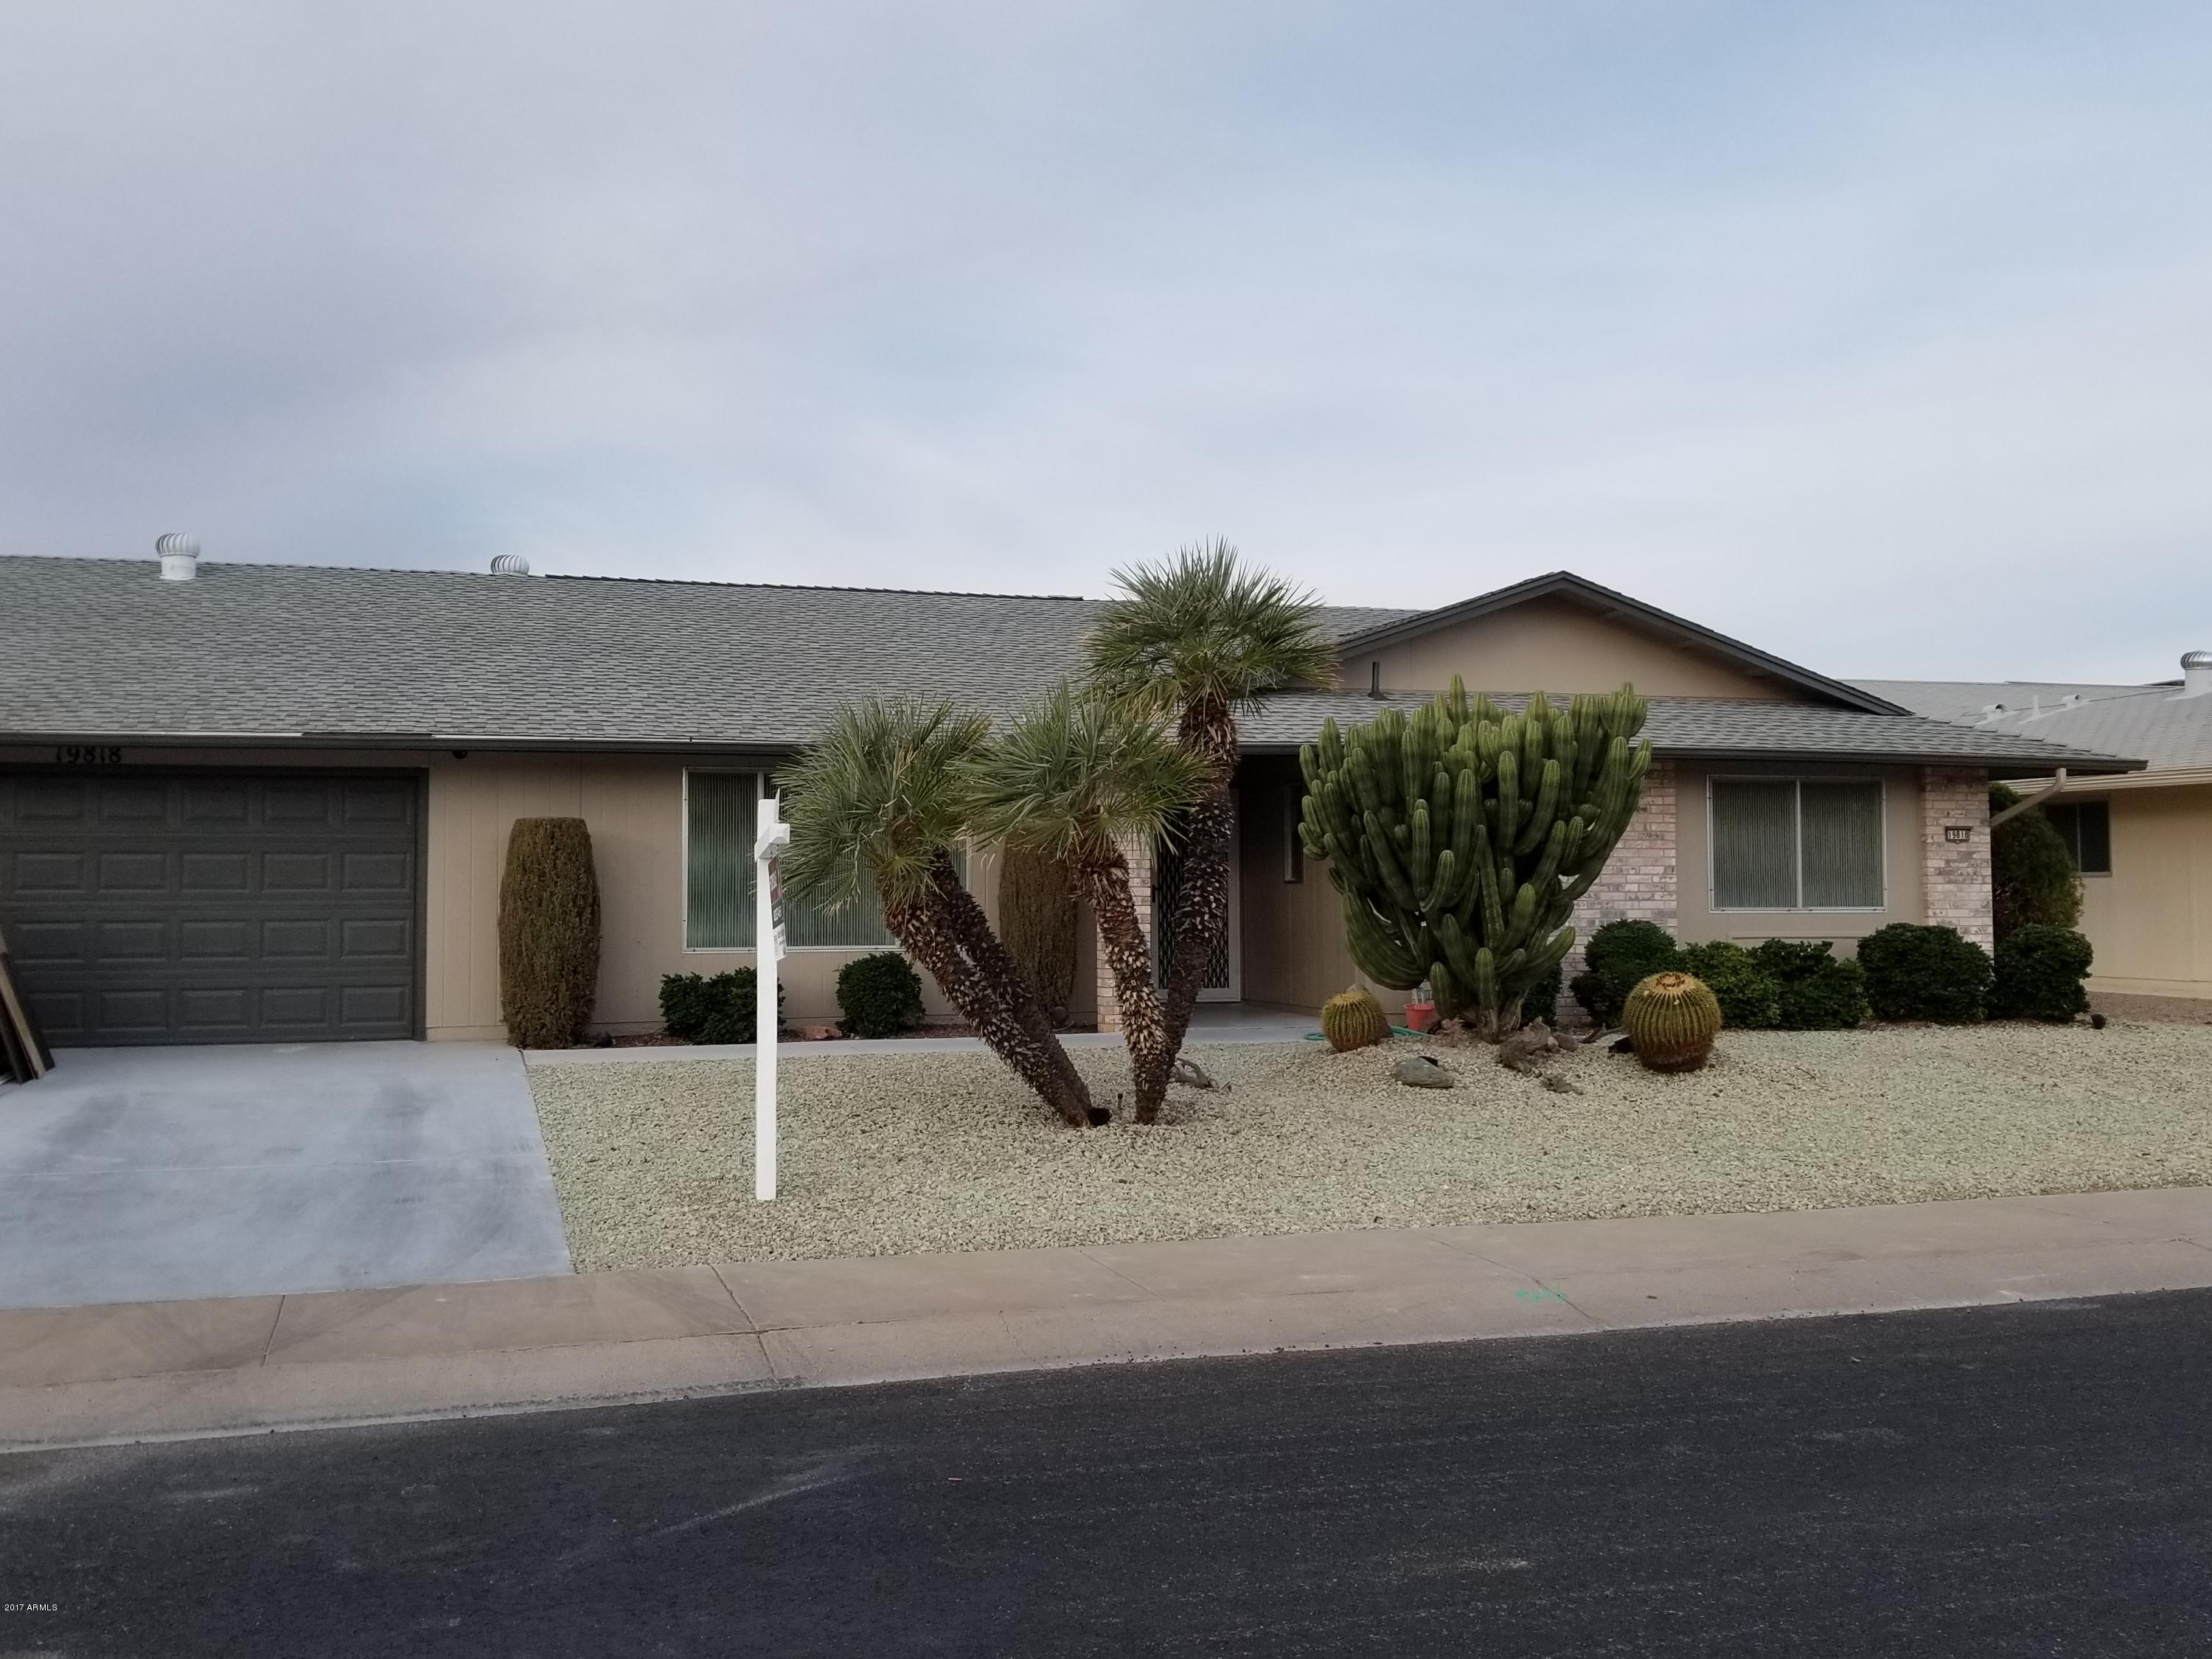 19818 N 129TH DRIVE, SUN CITY WEST, AZ 85375